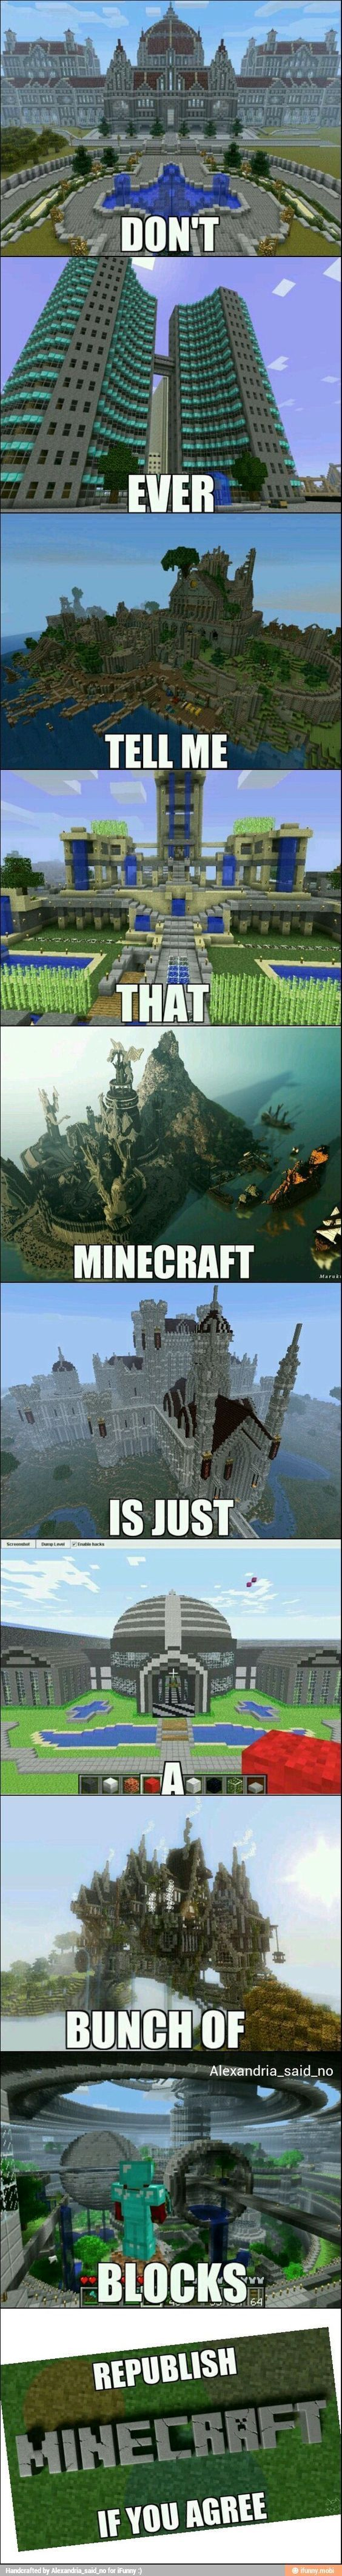 Don't ever tell me minecraft is just a bunch of blocks